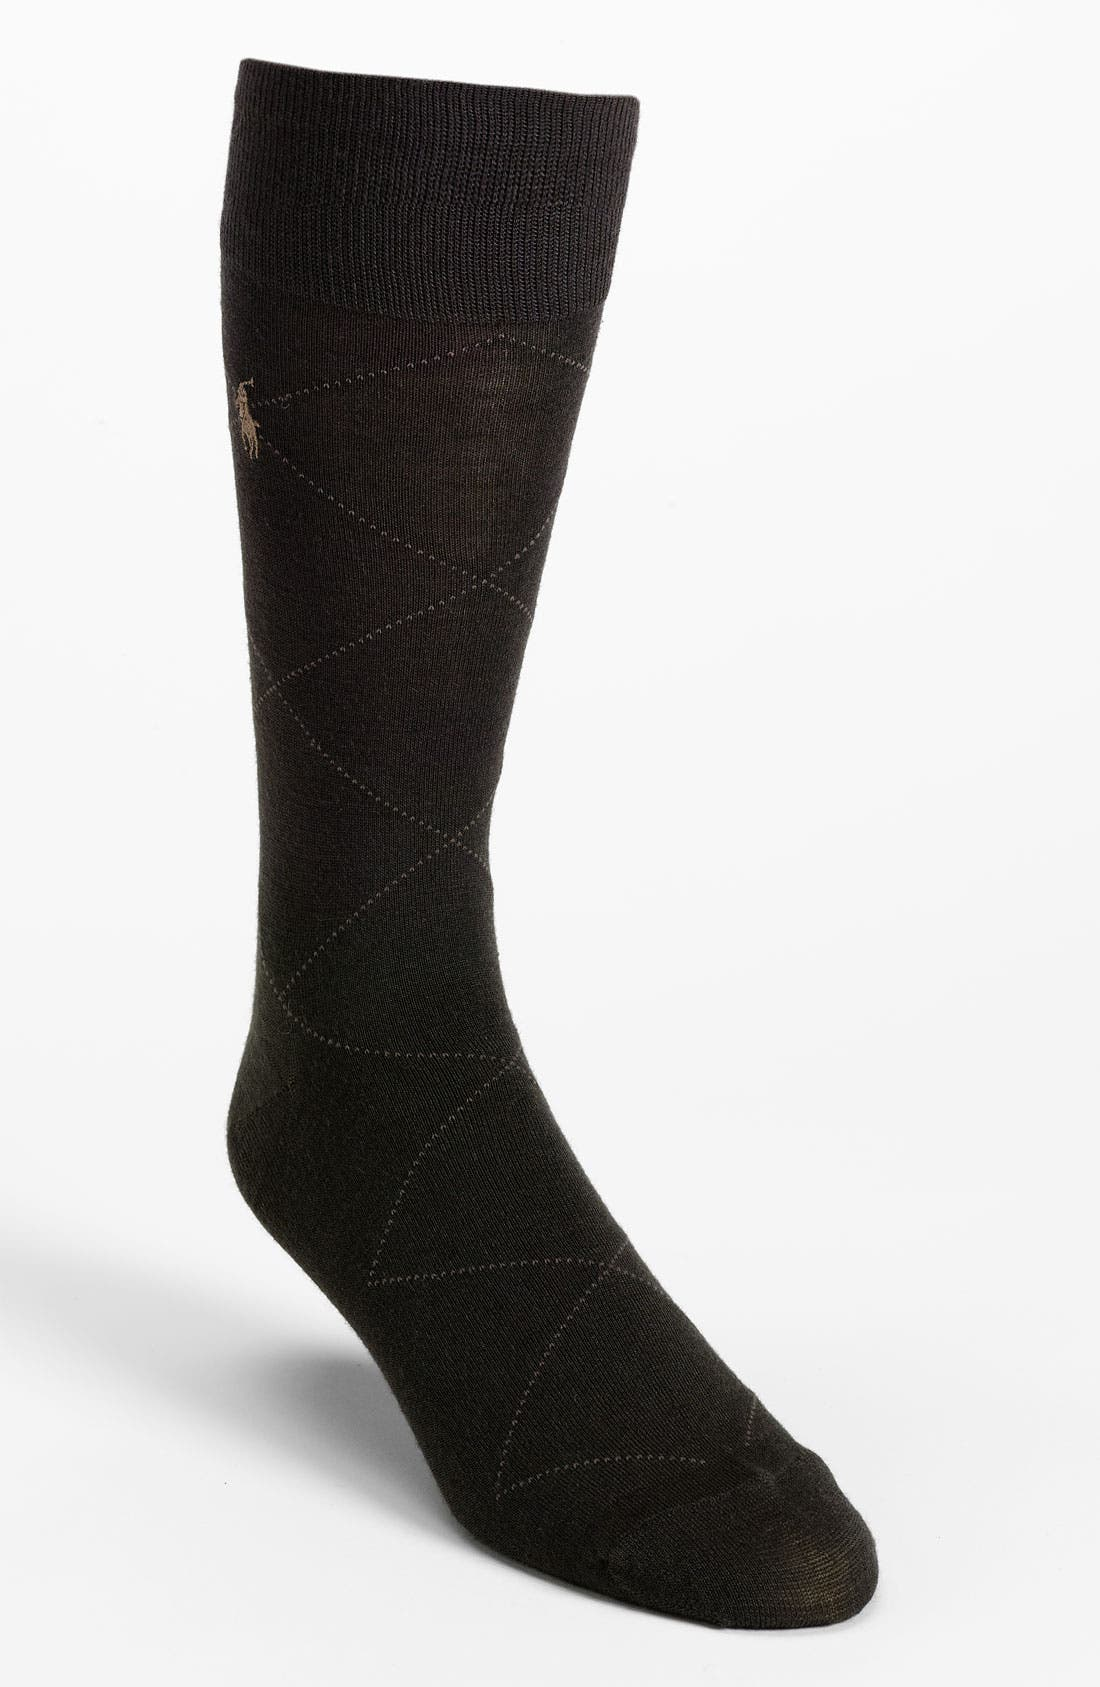 Alternate Image 1 Selected - Polo Ralph Lauren Argyle Socks